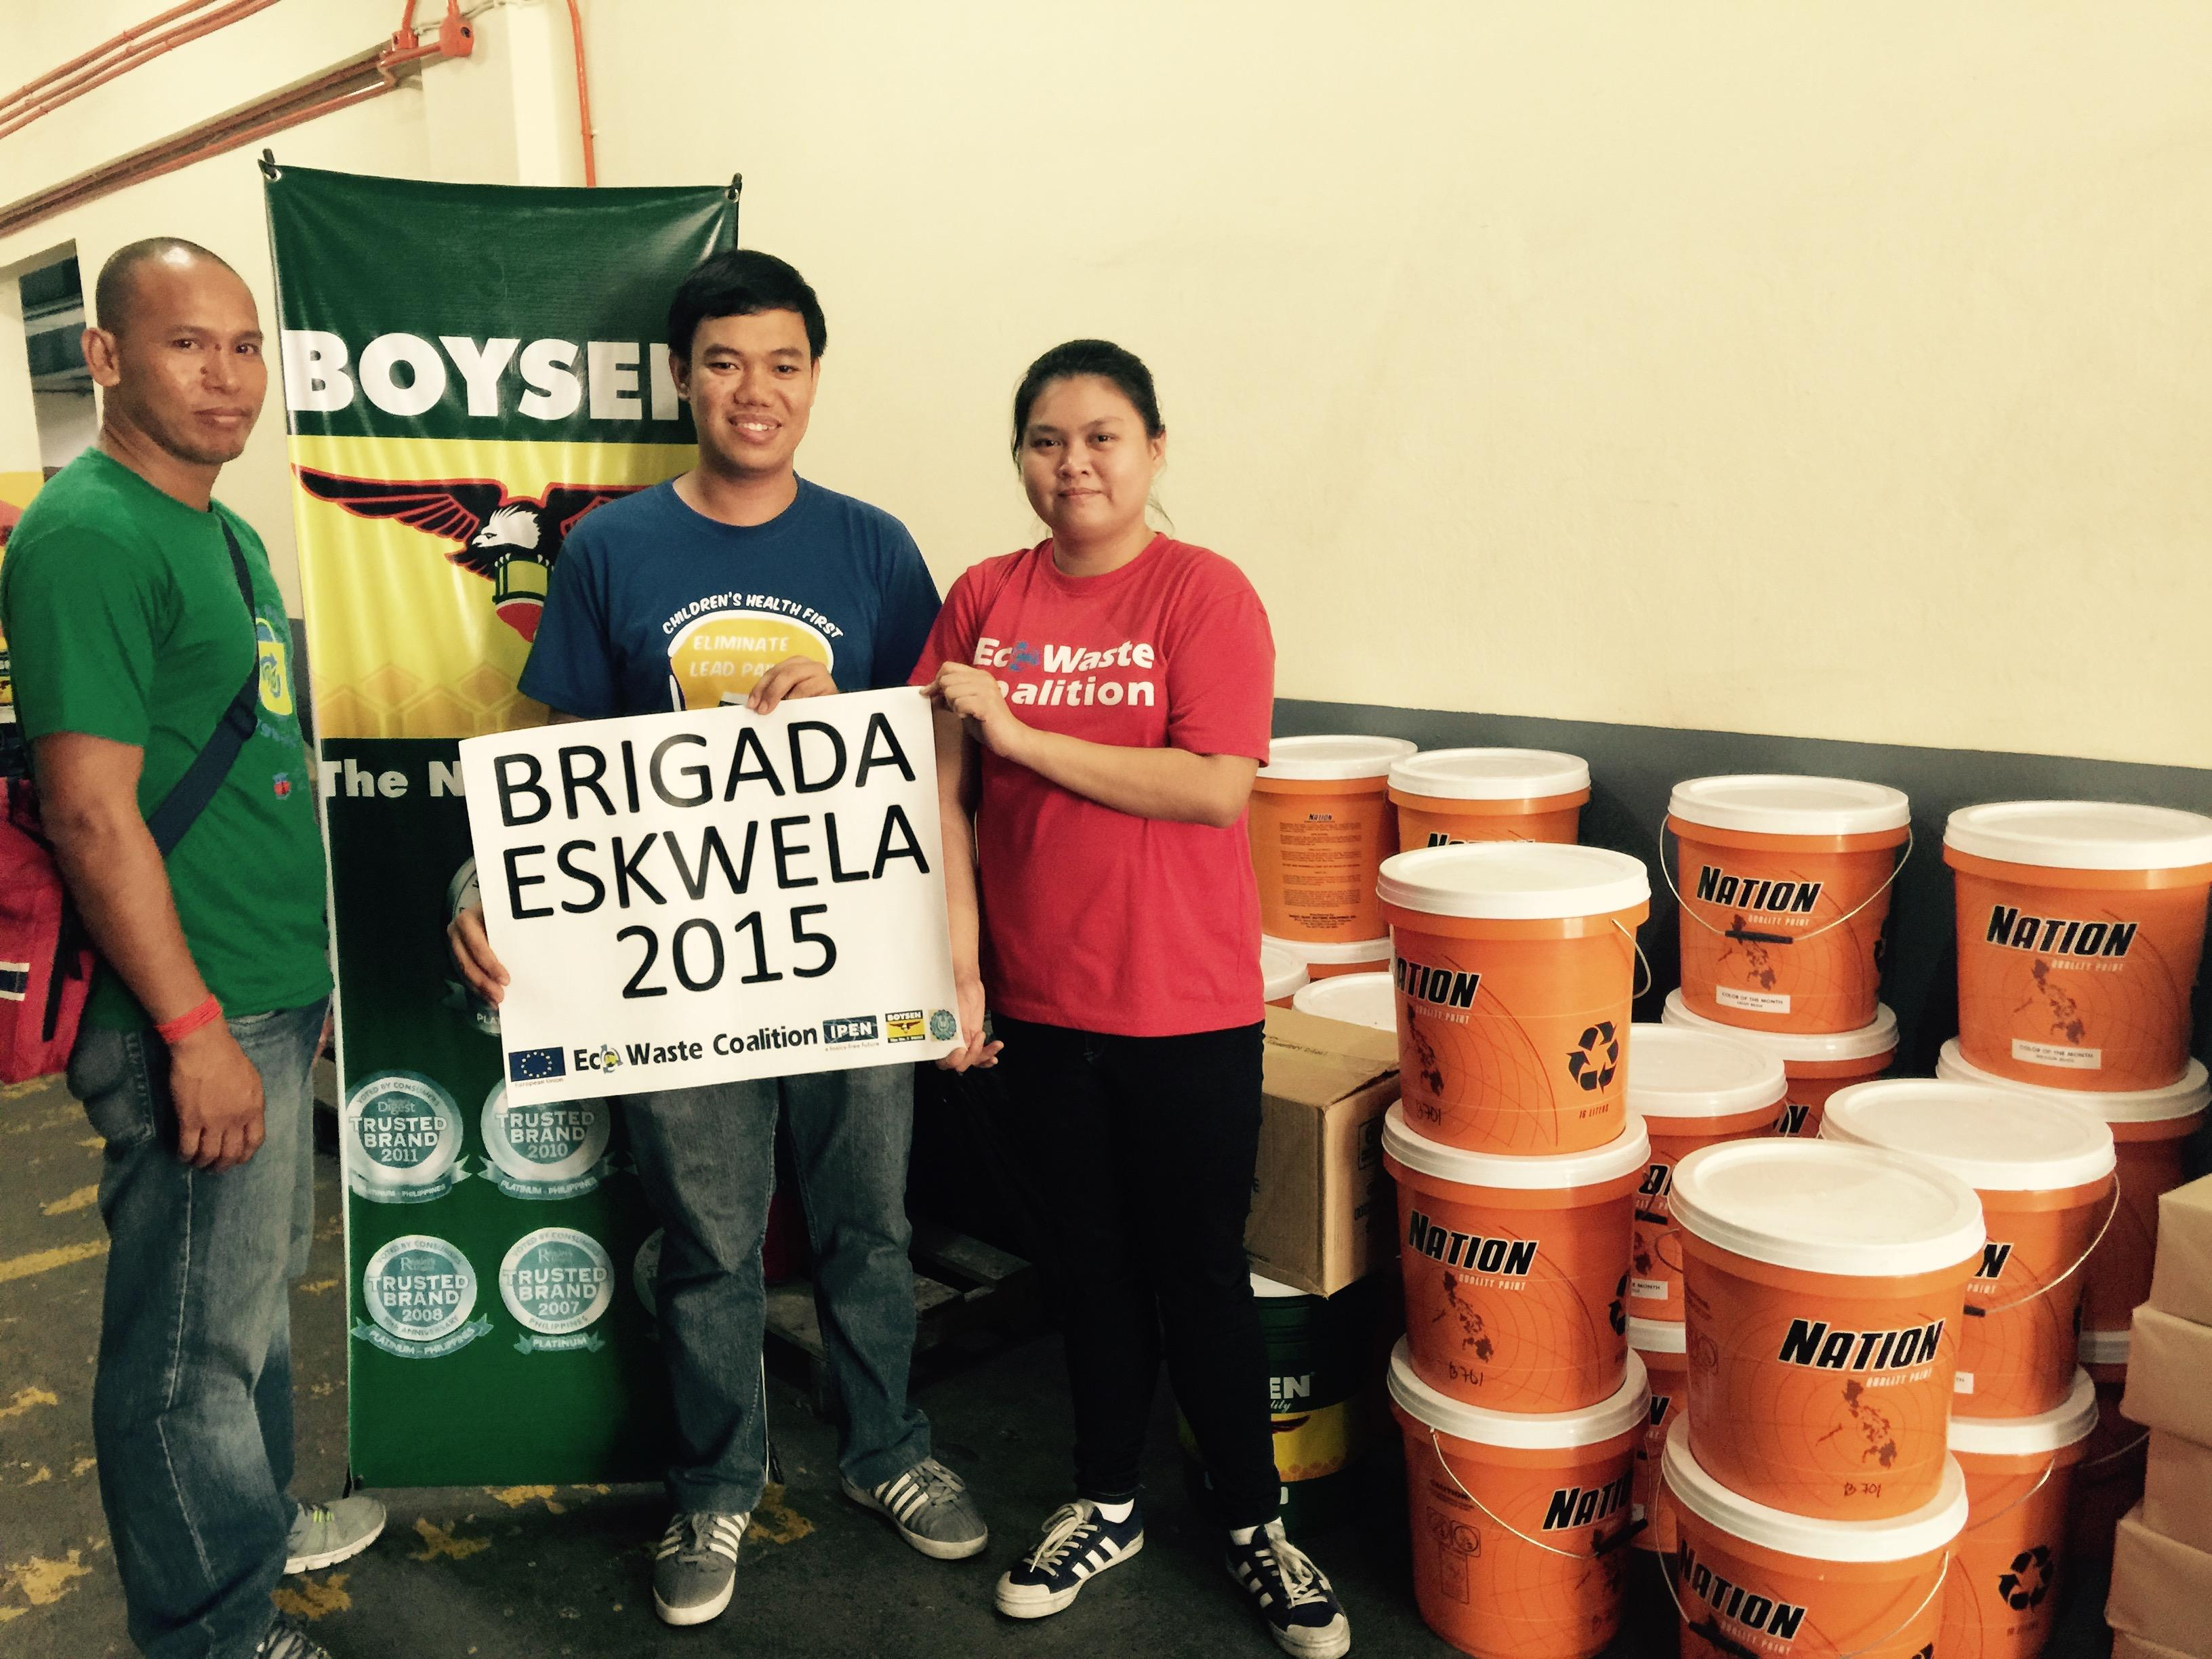 'Use Lead-safe Paints for Brigada Eskwela Renovations,' Organizers Told